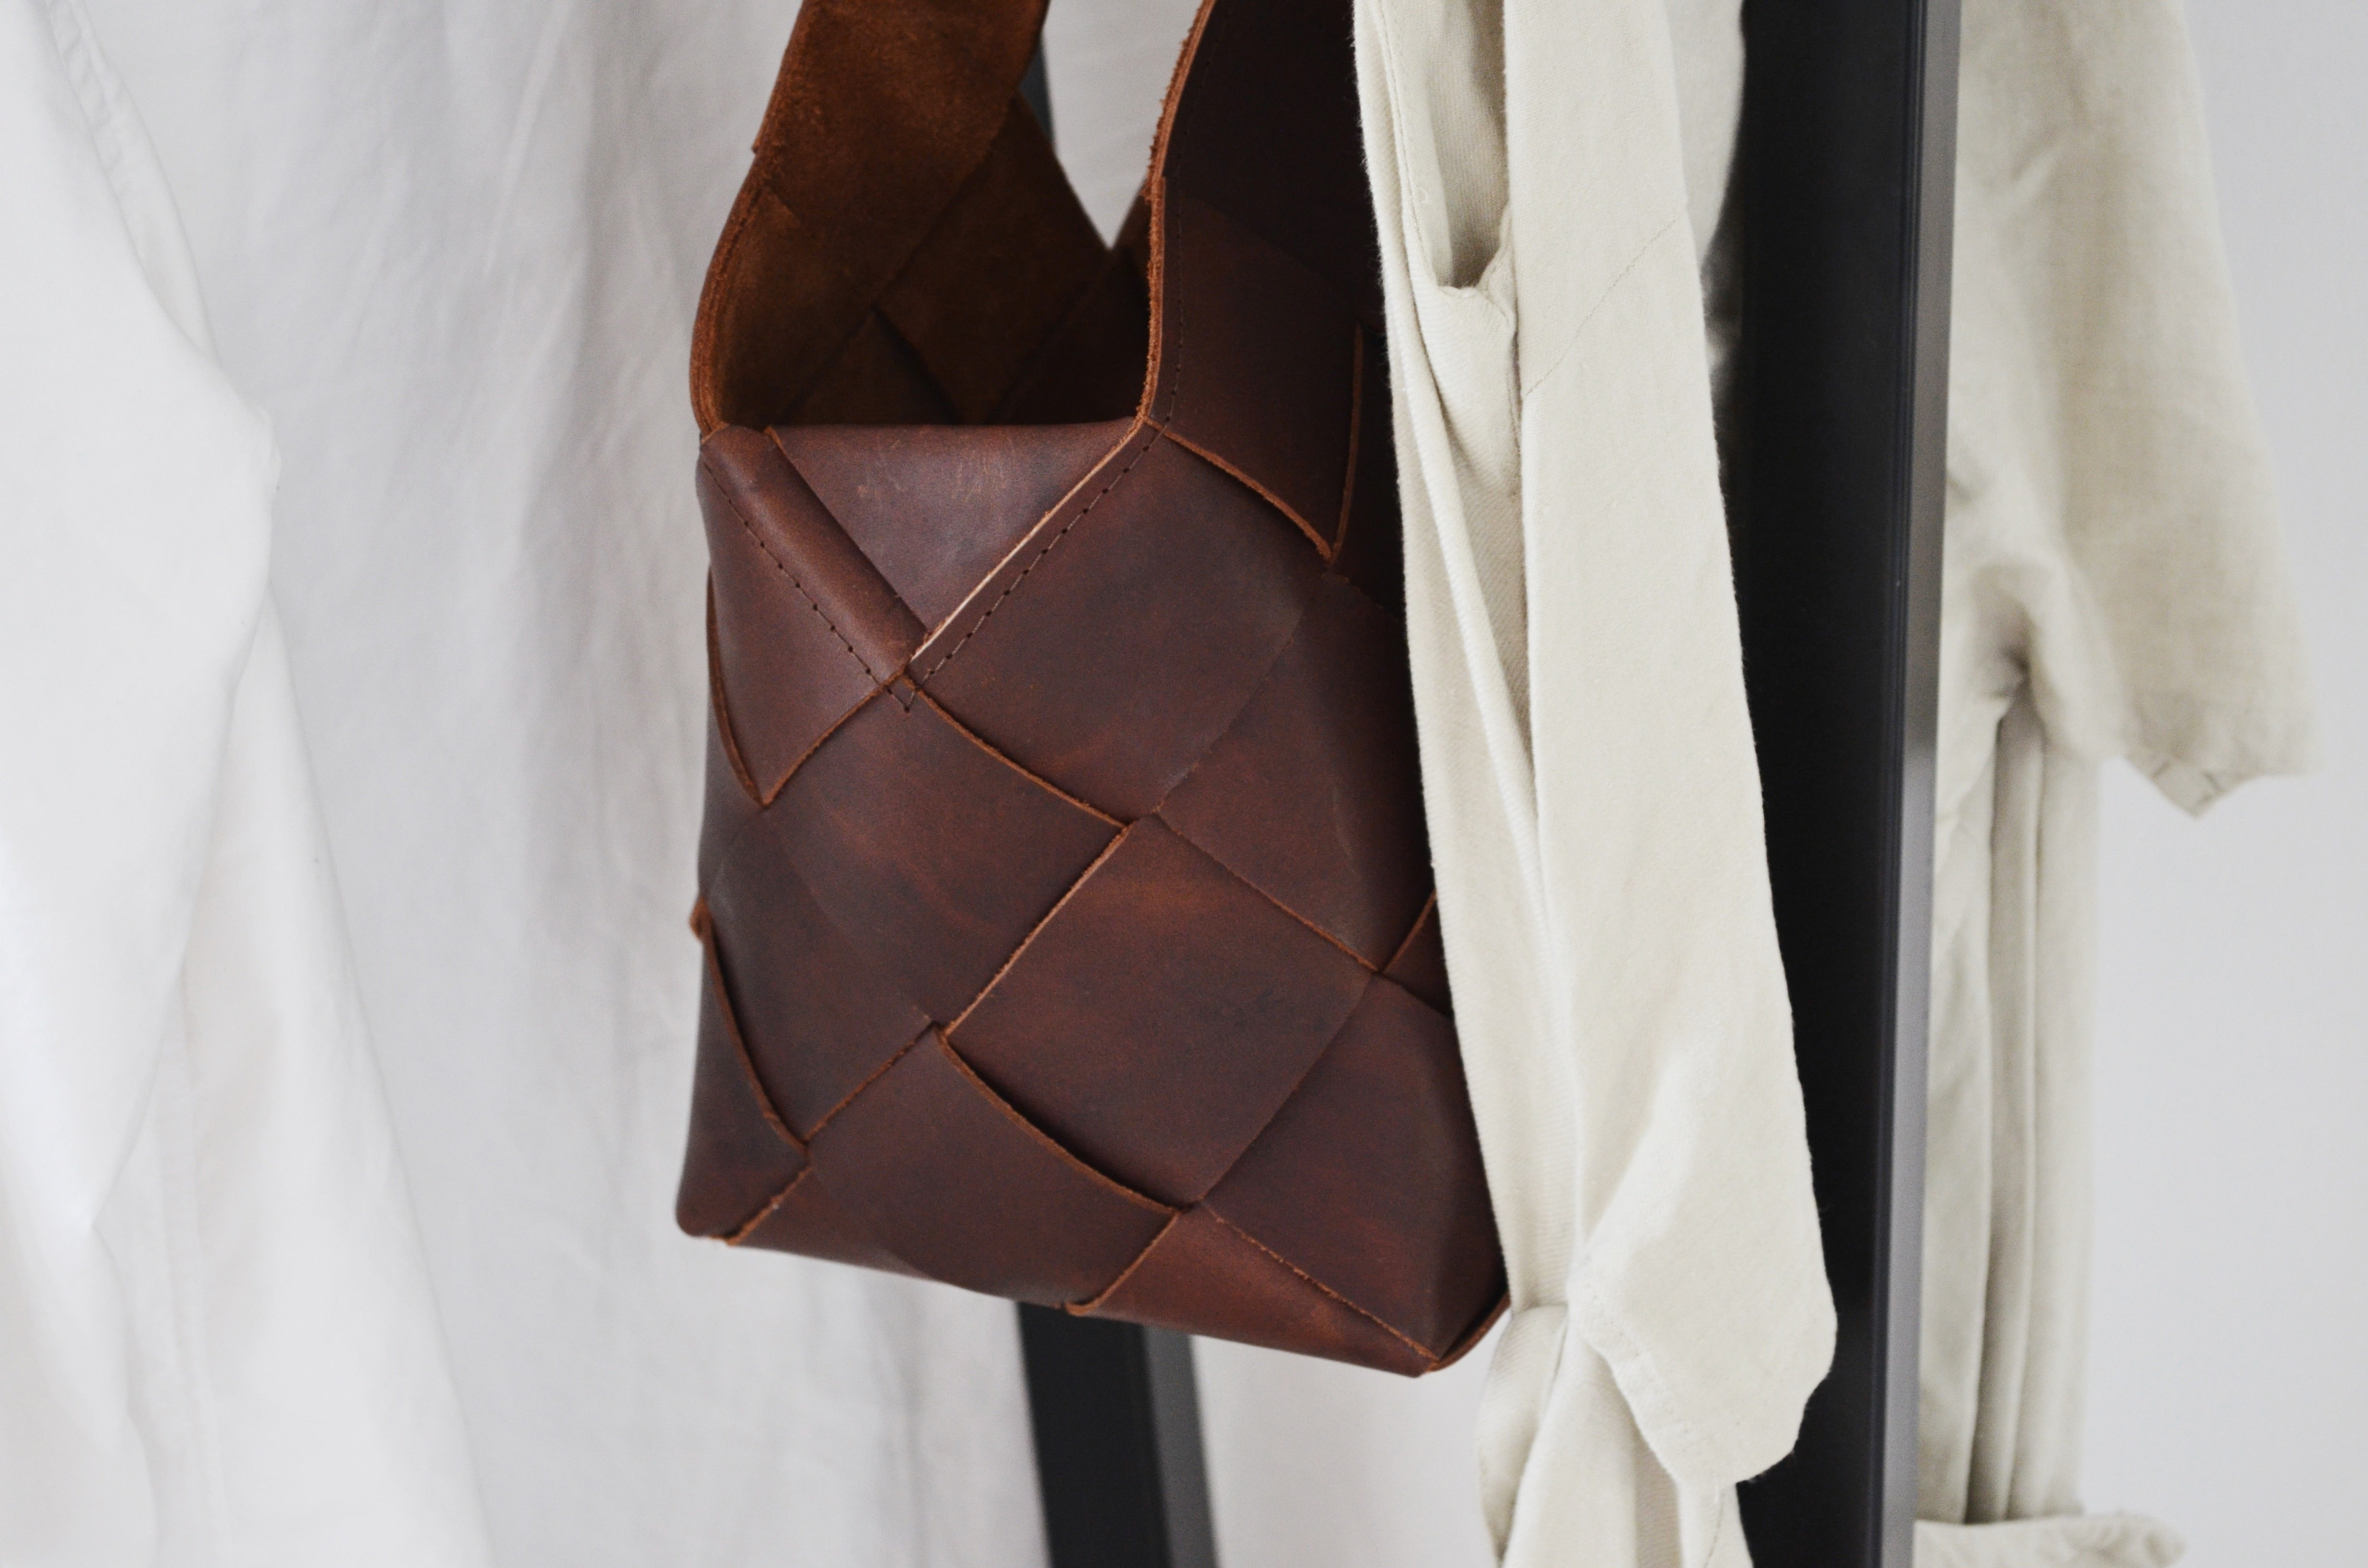 Woven Bag - LIMITED EDITION